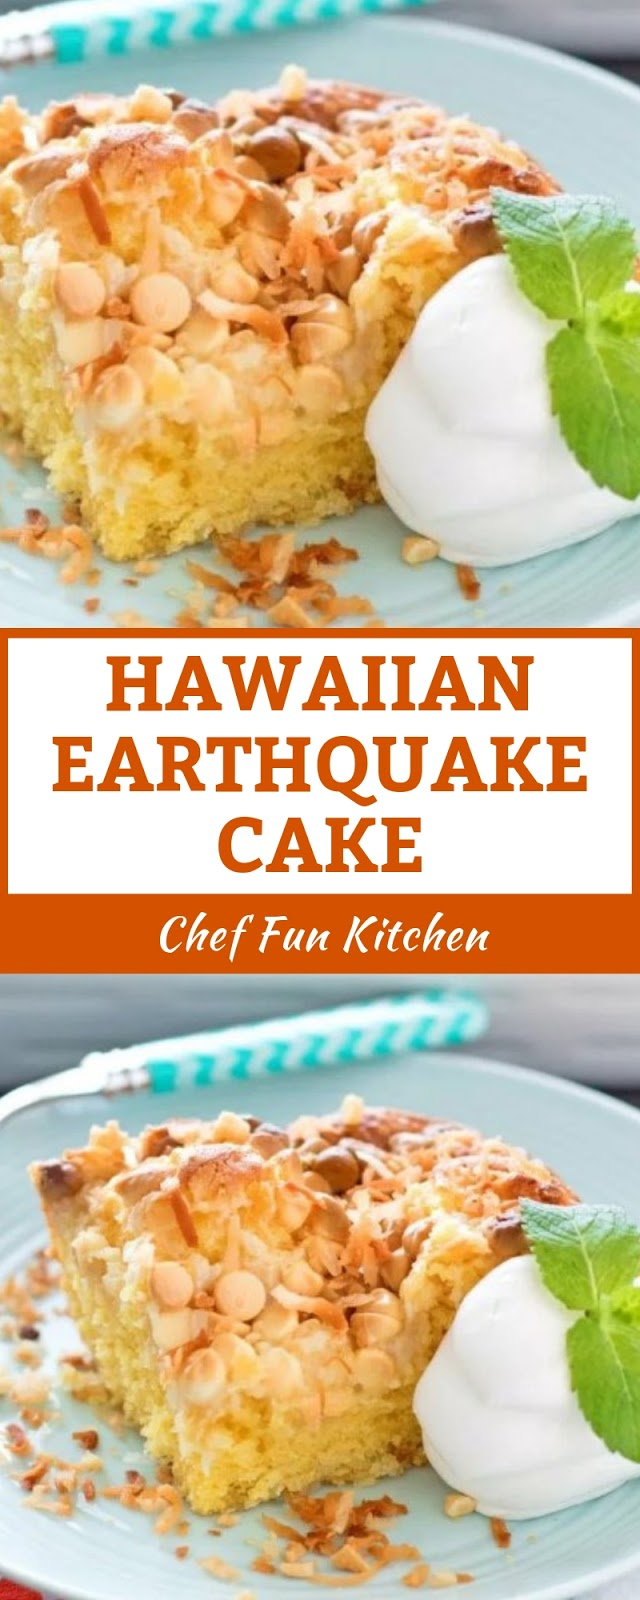 HAWAIIAN EARTHQUAKECAKE